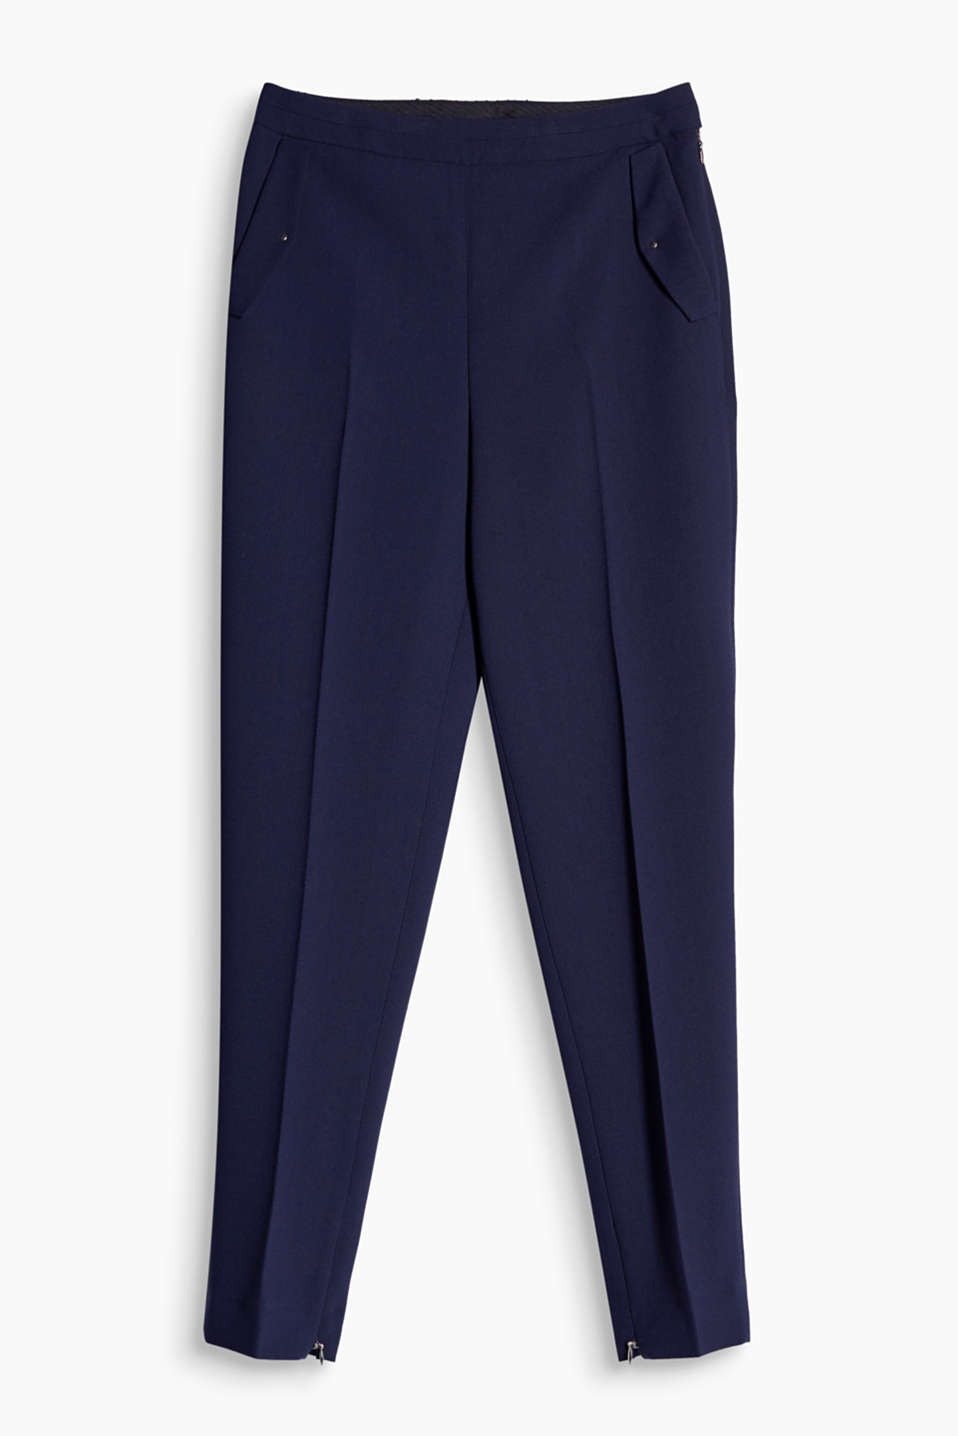 Modern business look: these crêpe trousers are high-waisted and have cropped legs with hem zips!